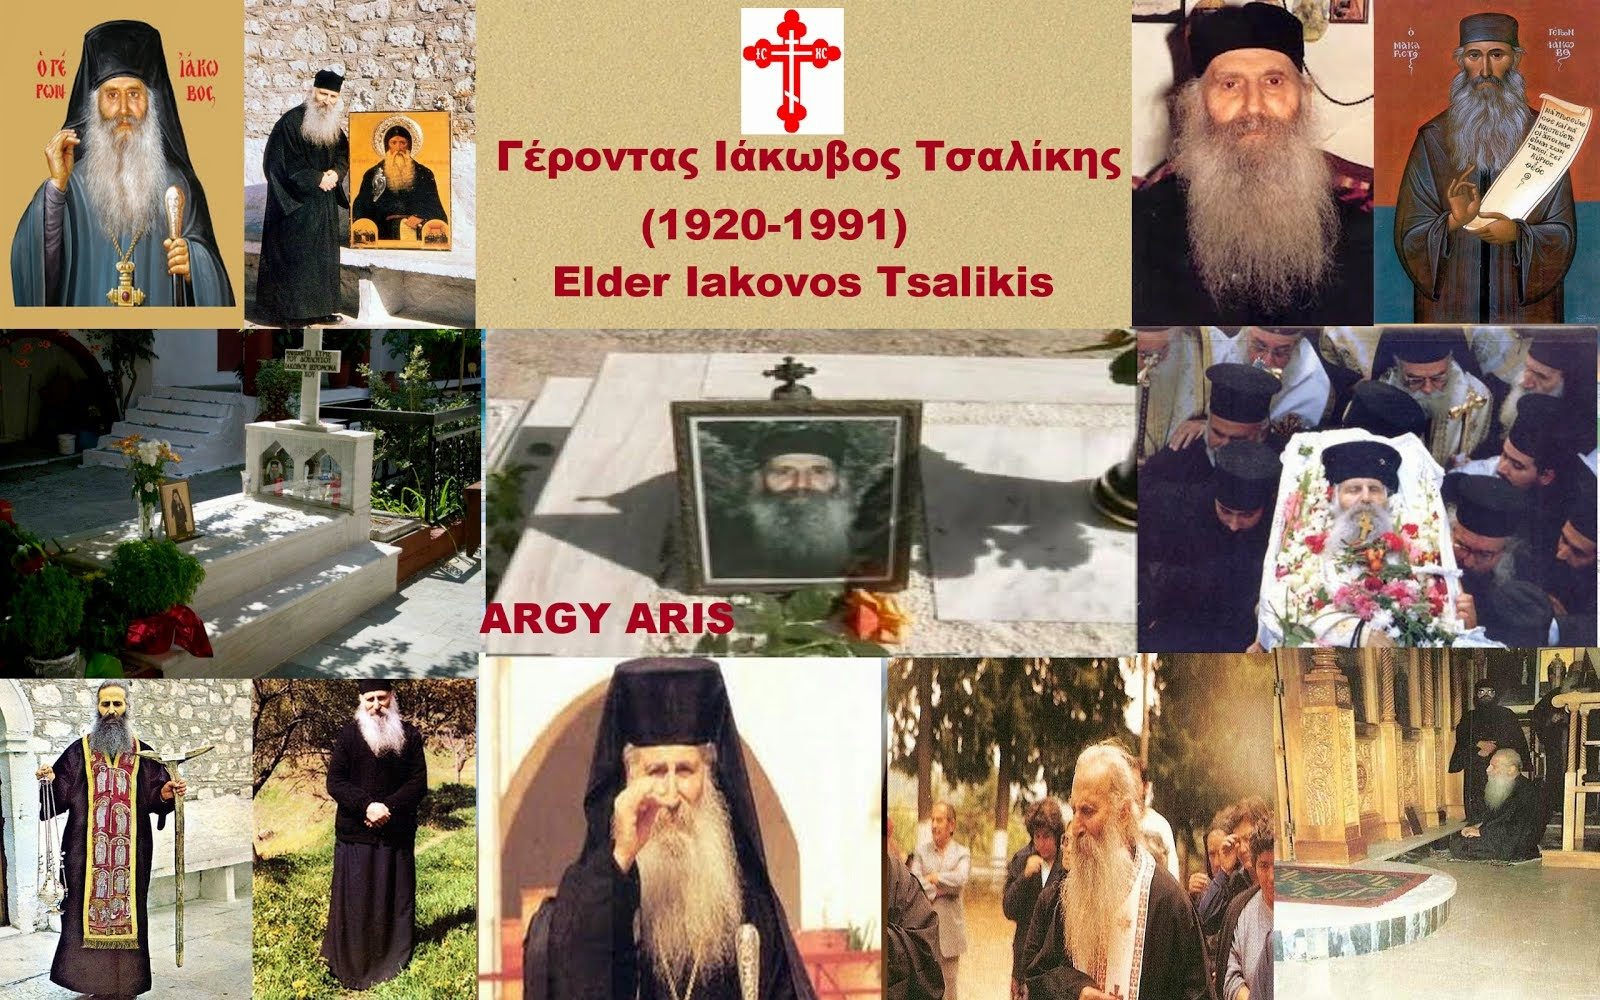 Γέροντας Ιάκωβος Τσαλίκης  - Elder Iakovos Tsalikis